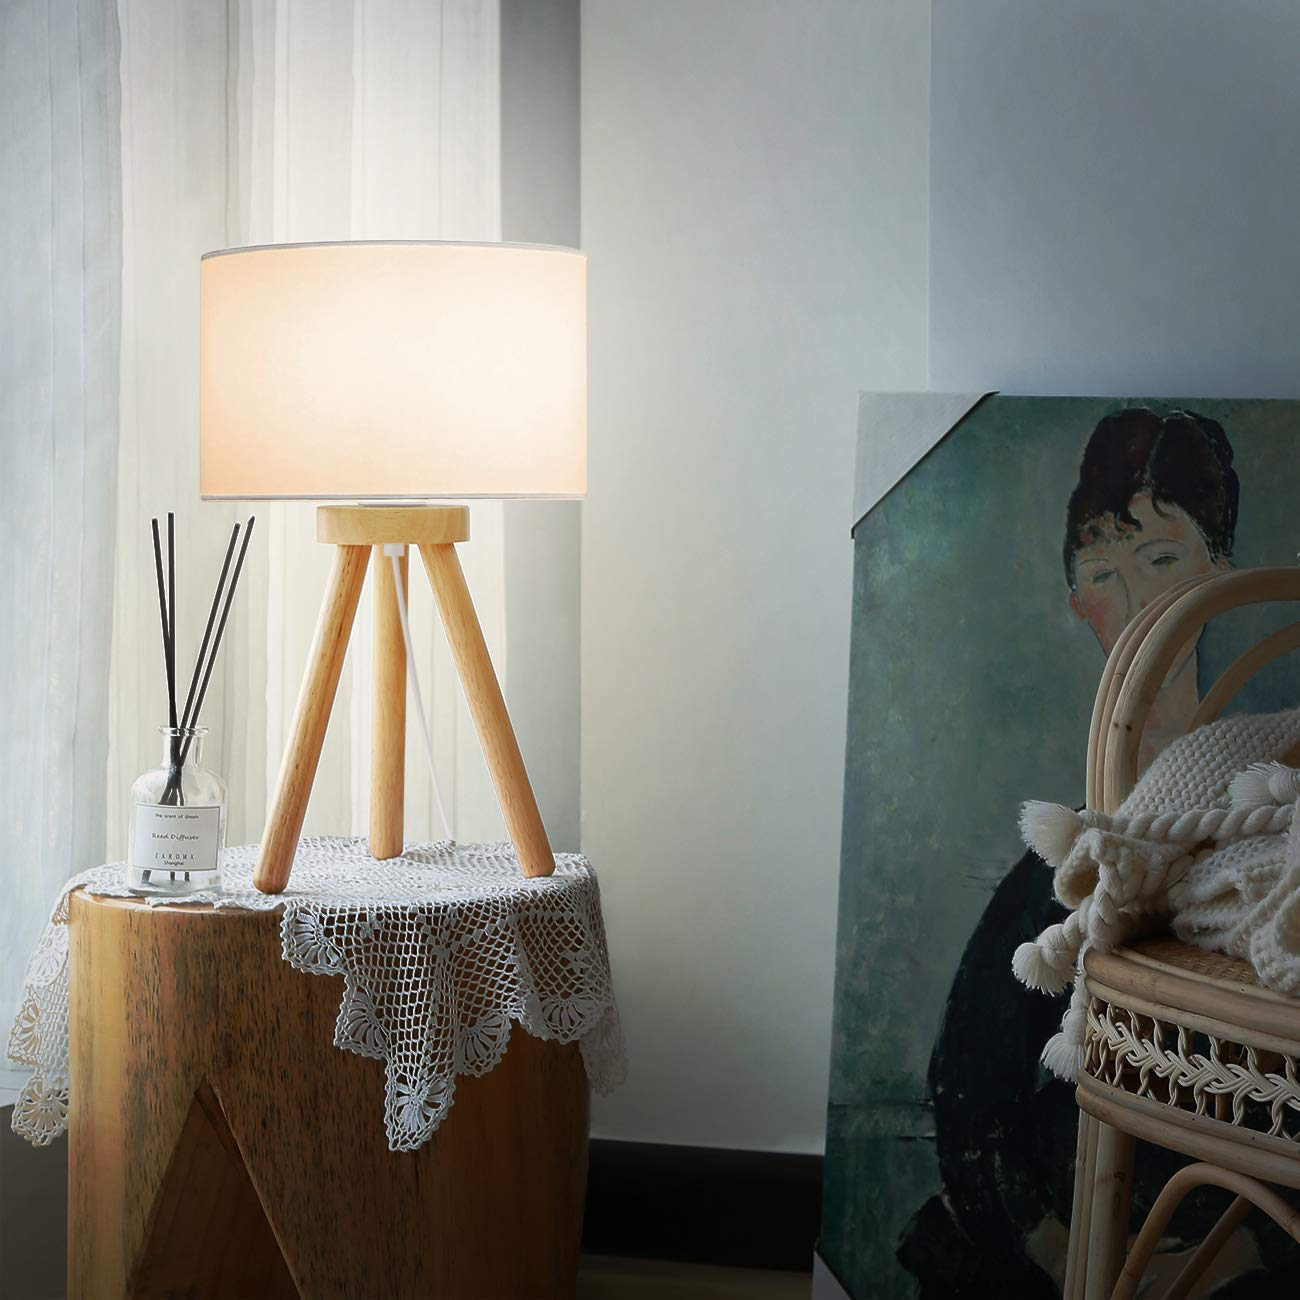 Tomons Wood Tripod Bedside Lamp, Simple Design with Soft Light for Bedroom Decorated in Warm and Cozy Ambience, Polyester White Fabric Lampshade, Packaged with 4W LED Bulb, Warm White Light, 39cm High by Tomons (Image #4)